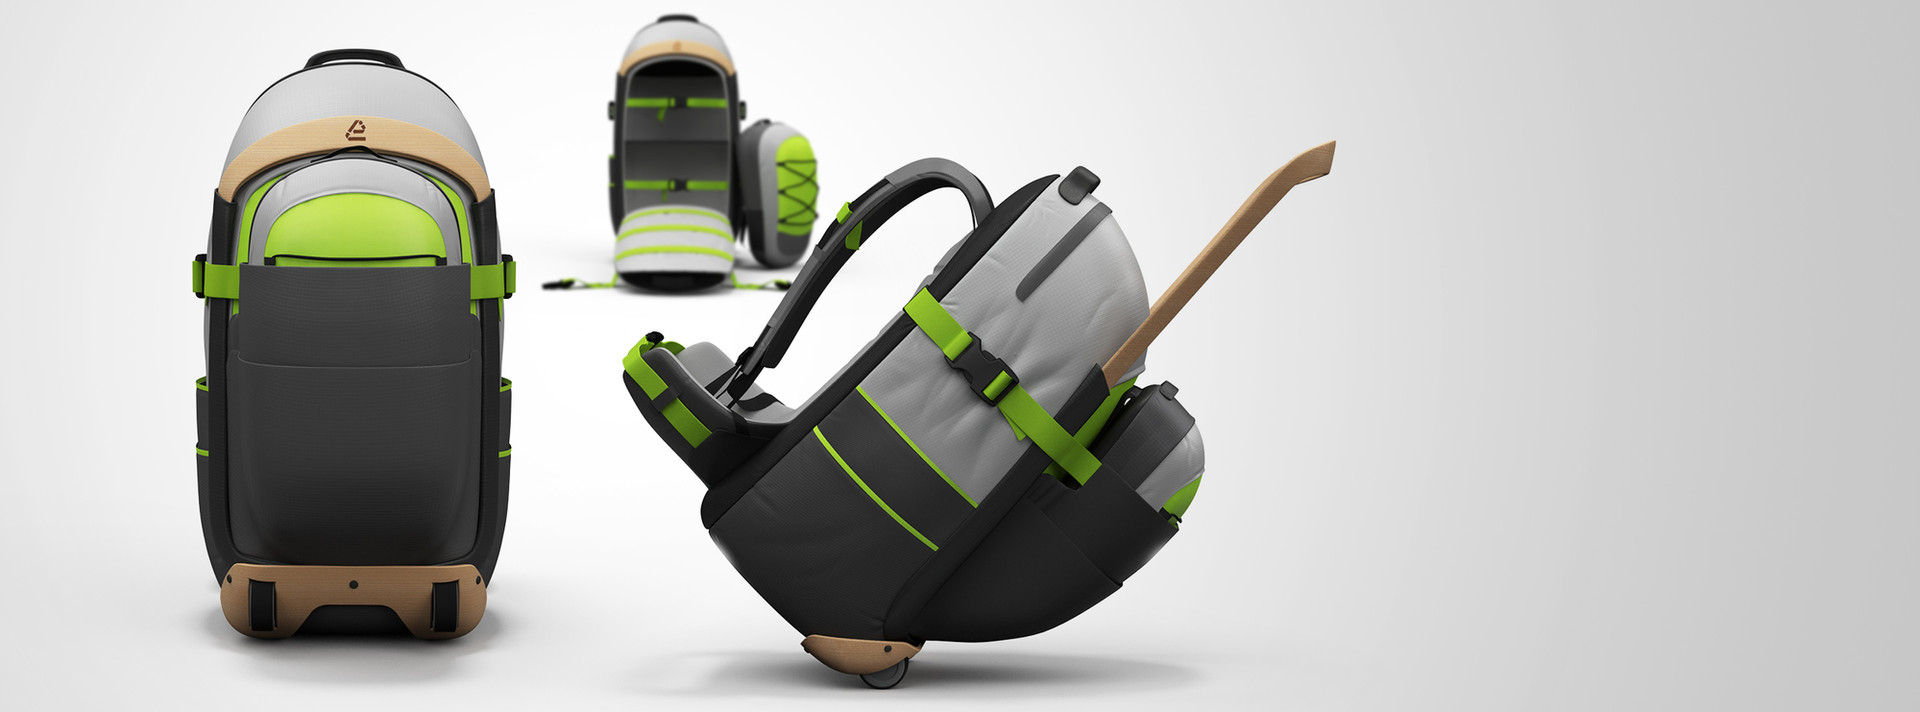 Ecompanion Travelpack